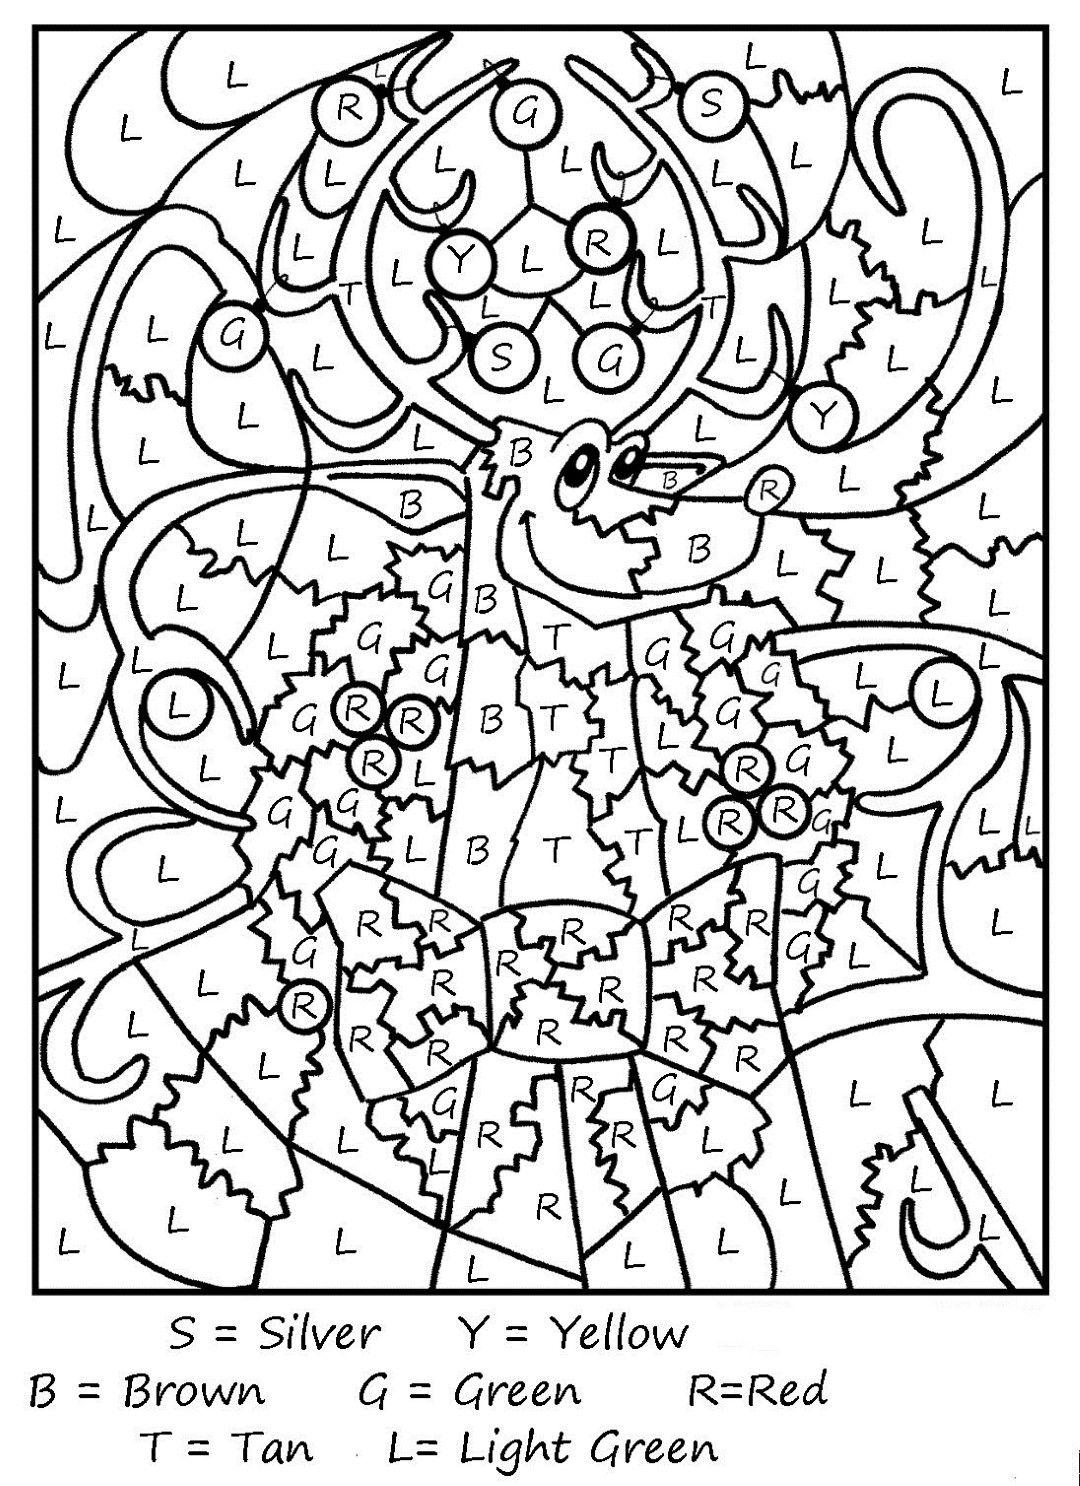 Free Printable Color By Number For Adults : printable, color, number, adults, Coloring.rocks!, Christmas, Coloring, Pages,, Color, Number,, Pages